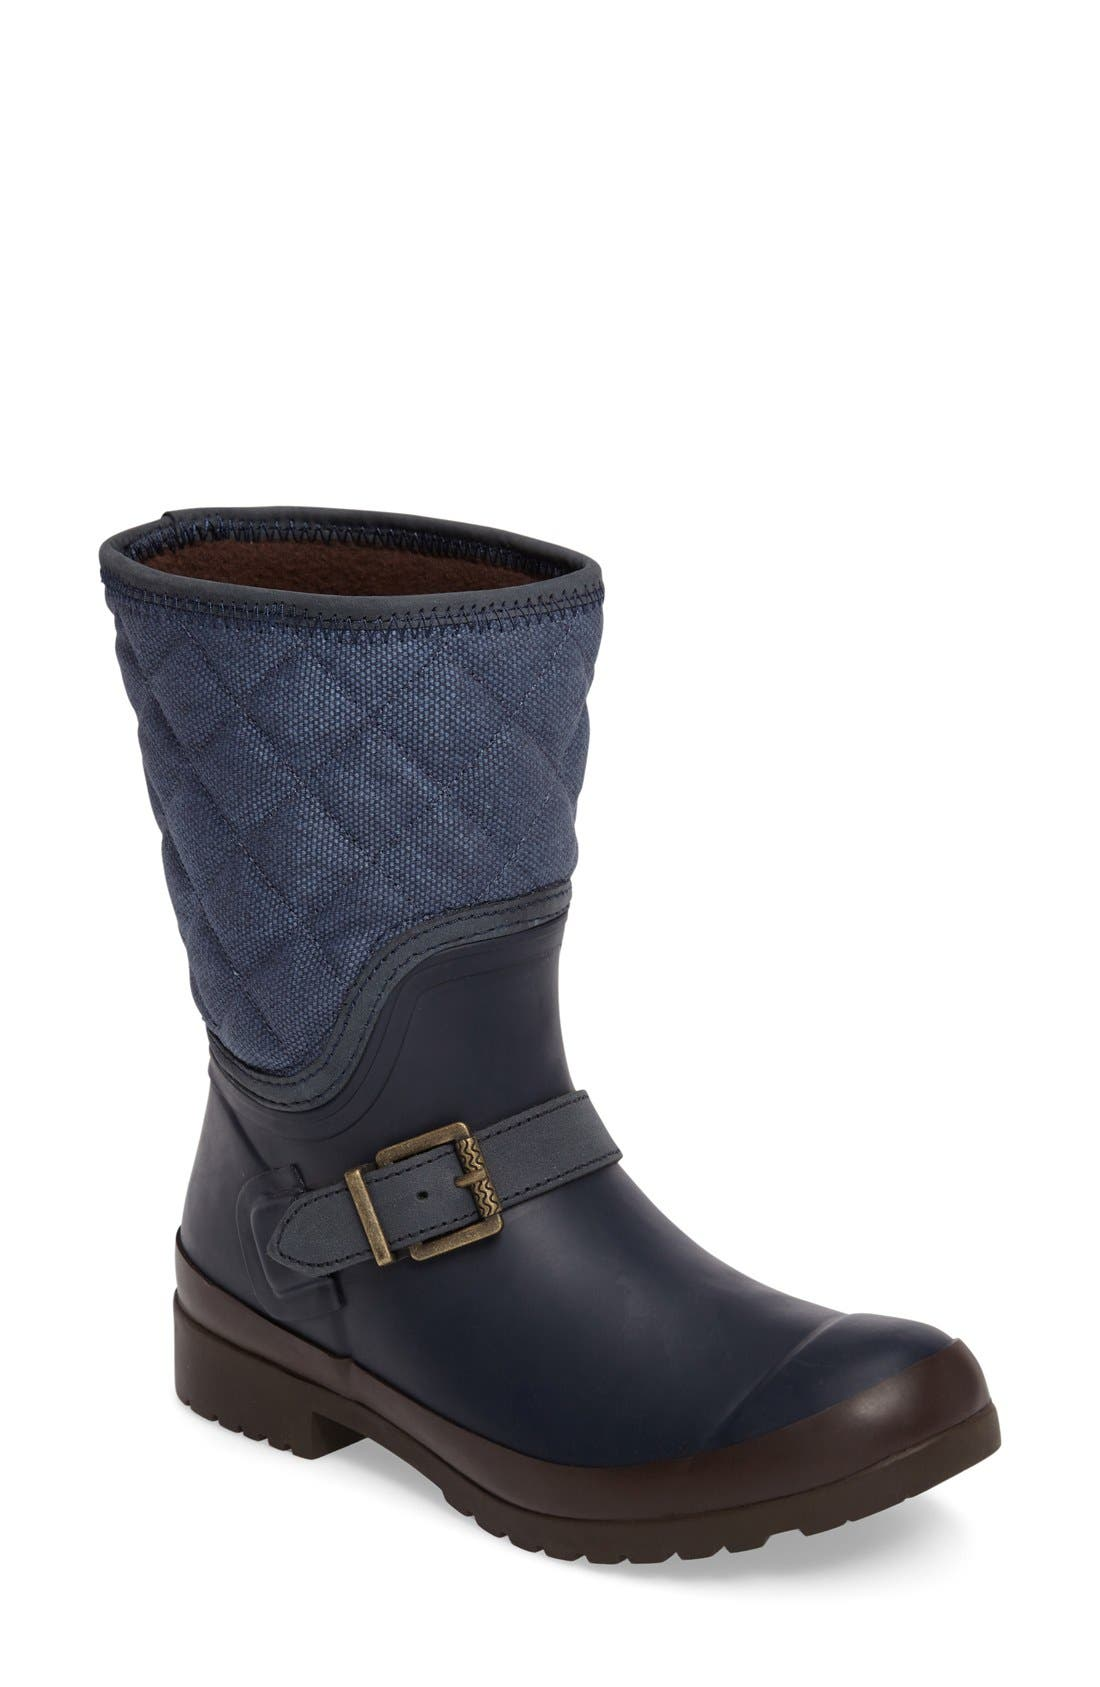 Alternate Image 1 Selected - Sperry Walker Gray Canvas Quilt Boot (Women)